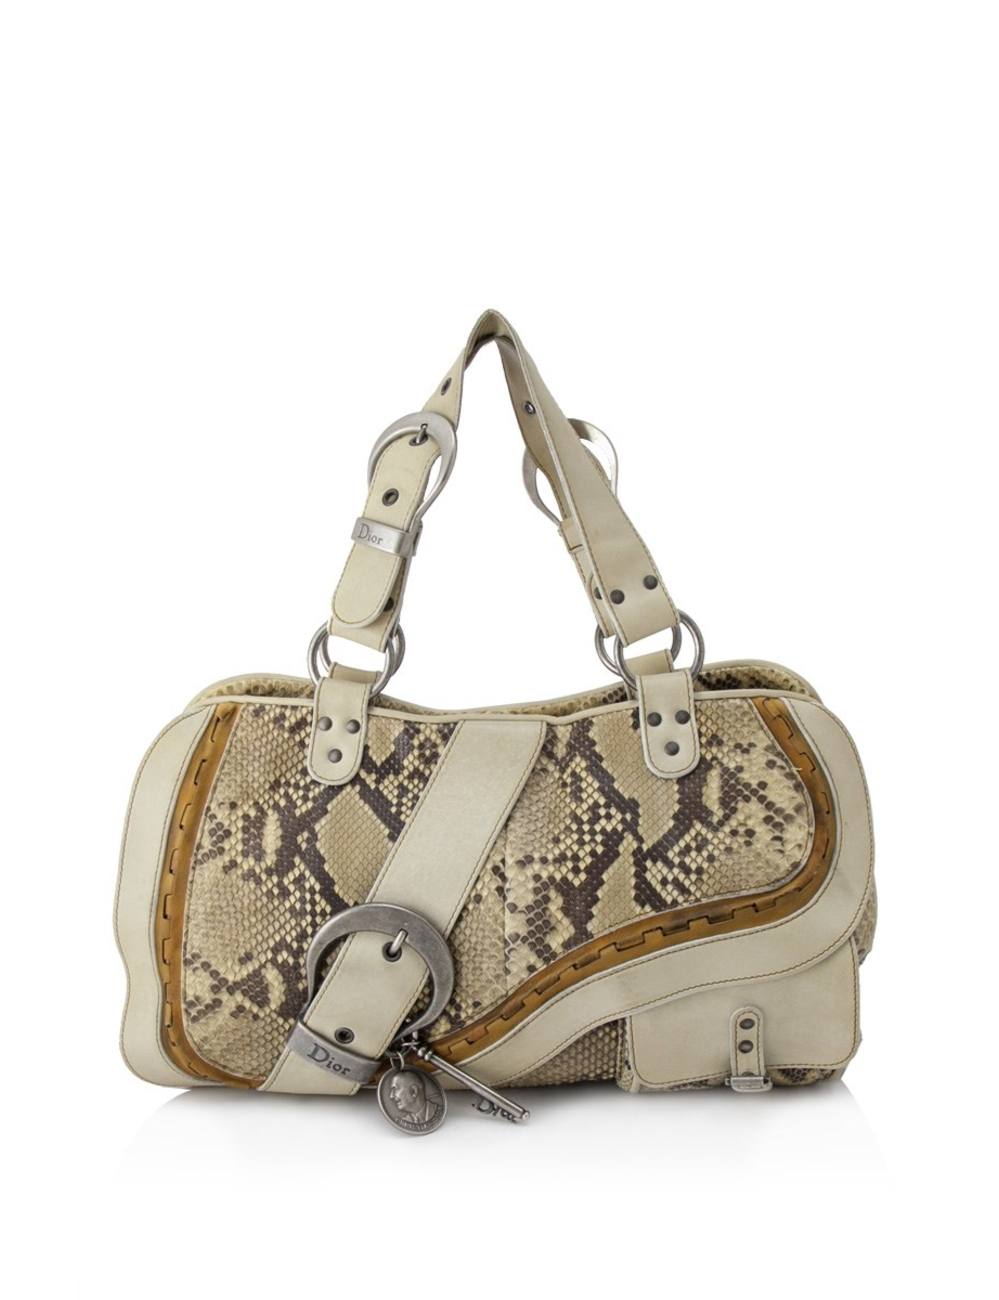 Exterior - Snakeskin leather with calfskin leather trim - Aged silver tone hardware - Double top han